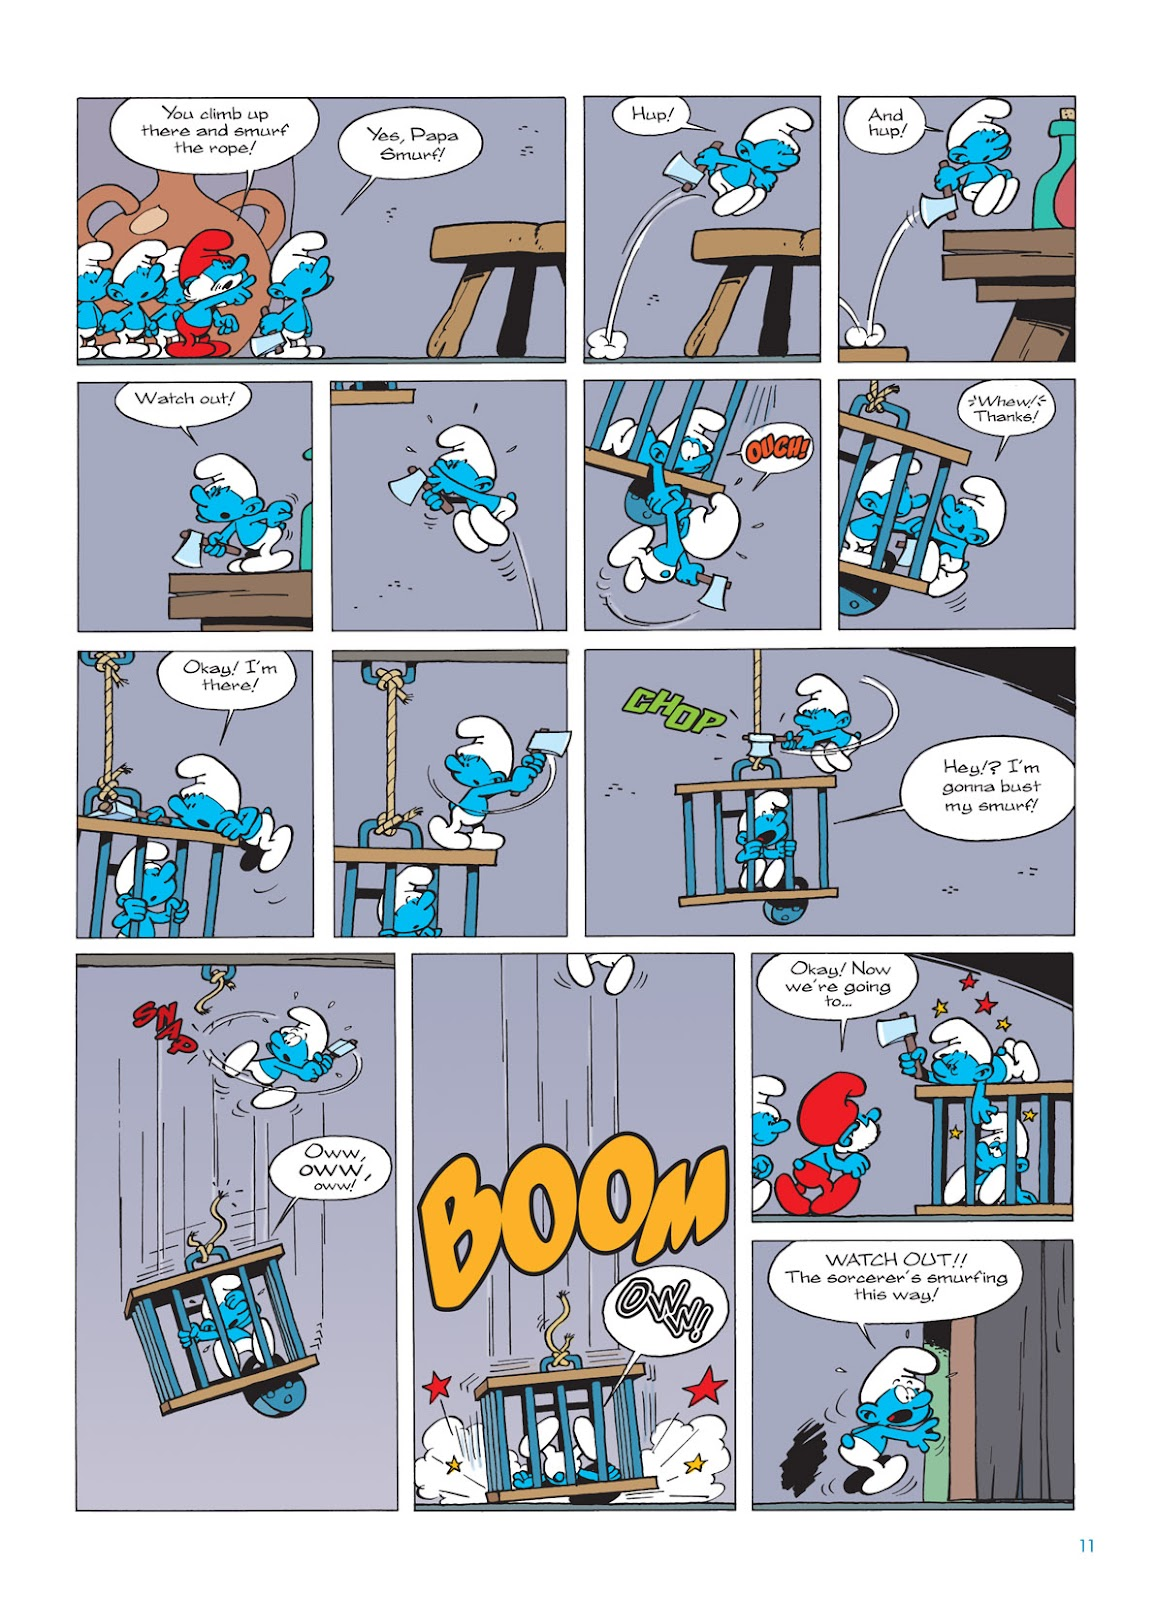 Read online The Smurfs comic -  Issue #9 - 11